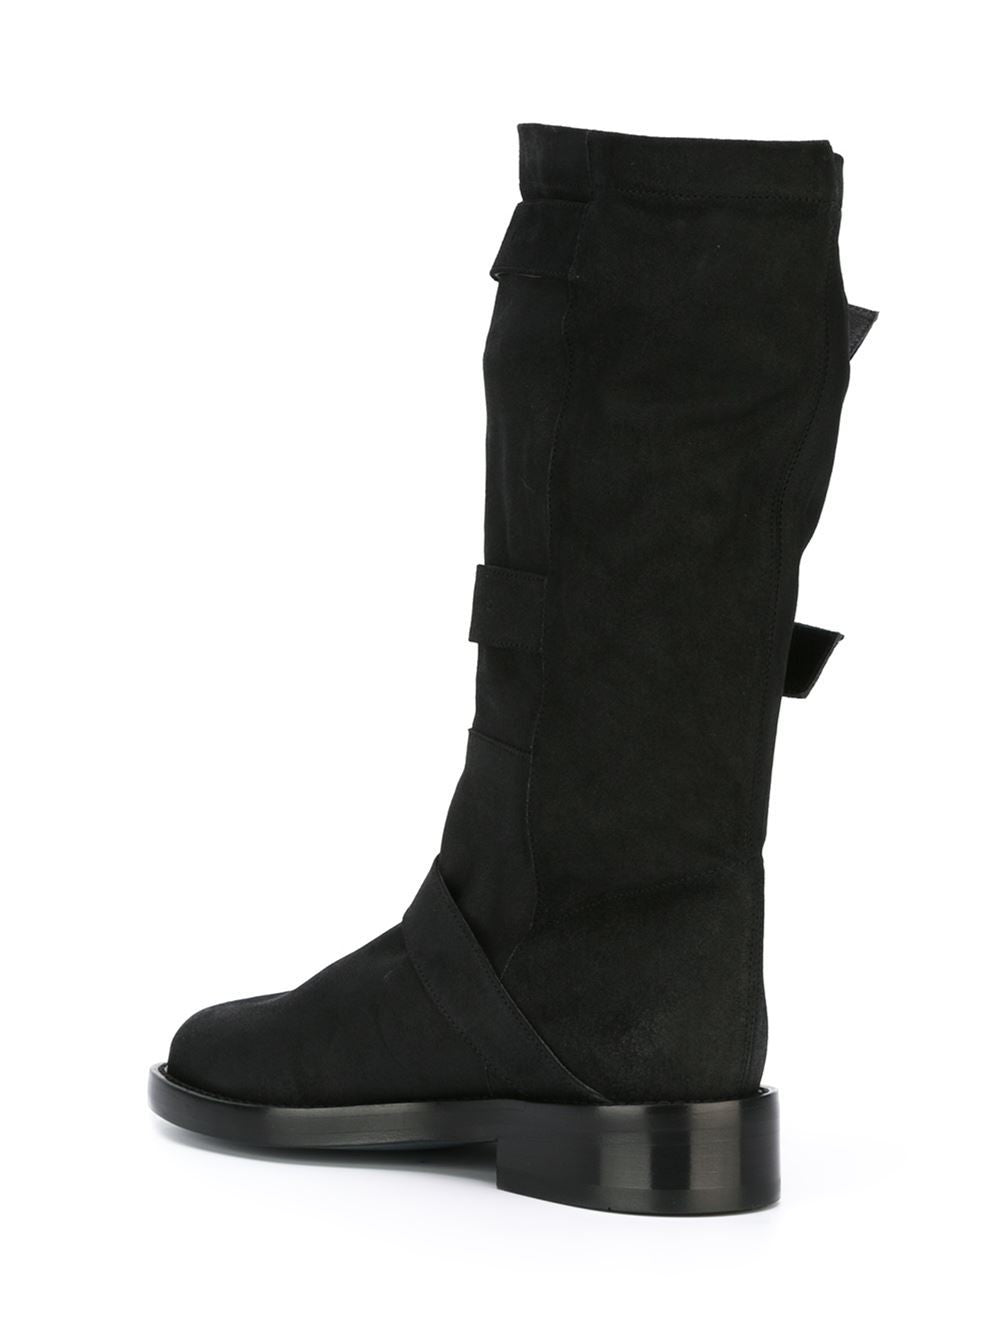 Buckled Reverse-Leather Boot | 1613-2822-376